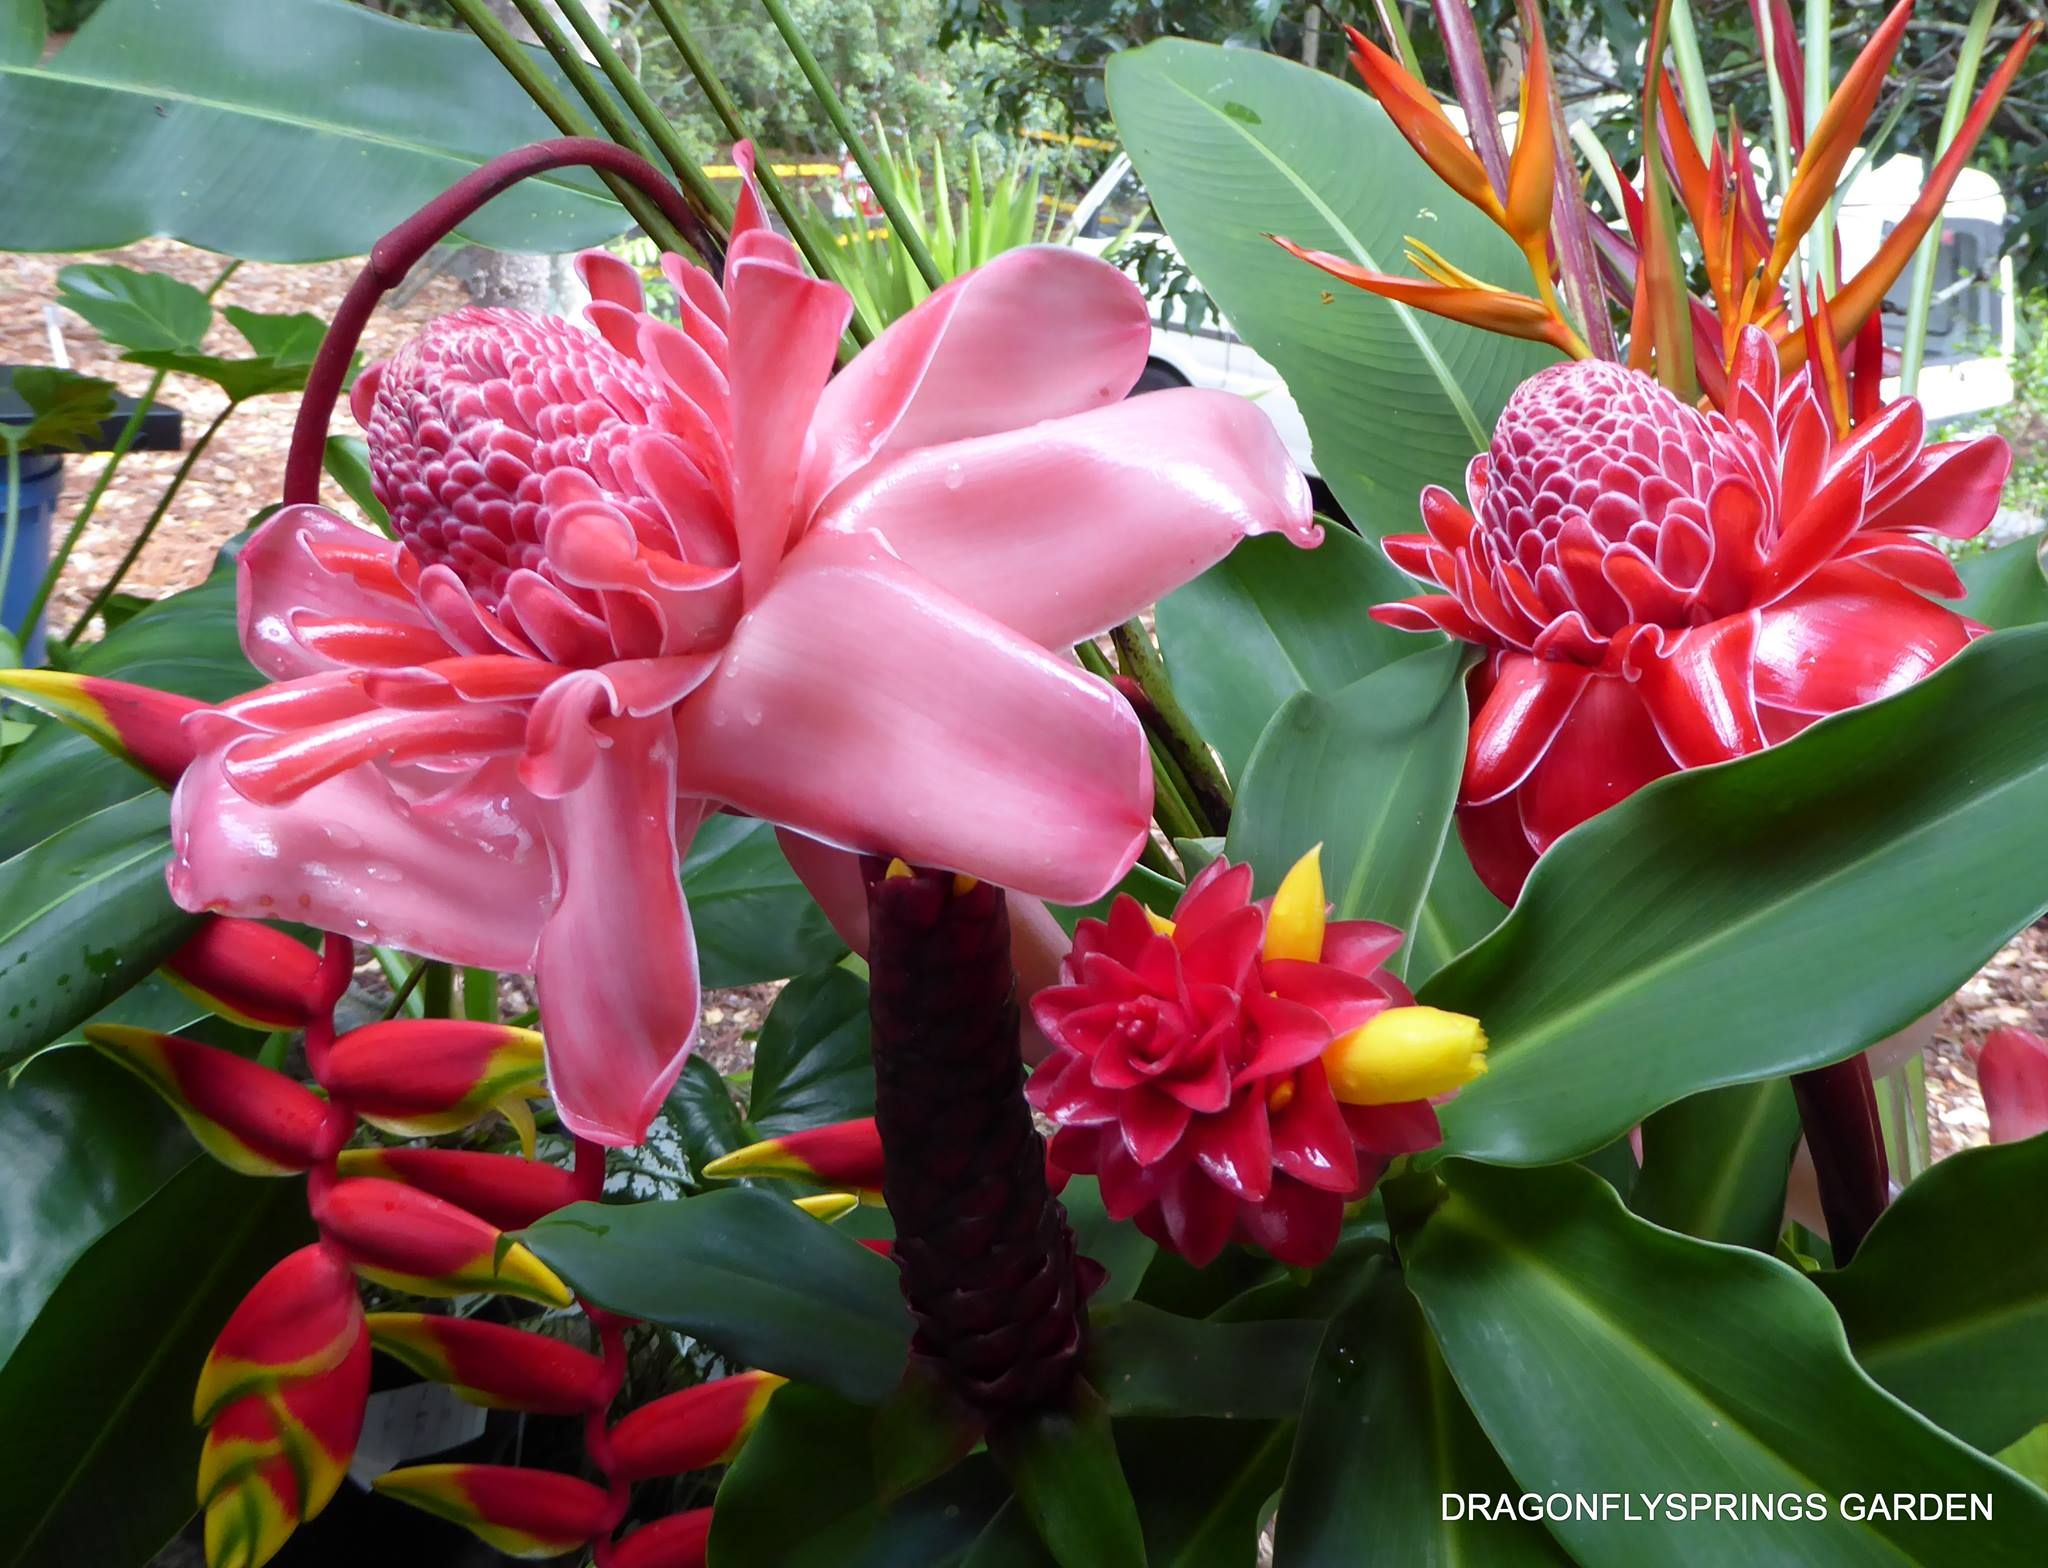 Https Www Facebook Com Dragonflysprings Photos Pb 553955818054396 2207520000 1463983424 900030653446909 Type 3 With Images Torch Ginger Plants Photo